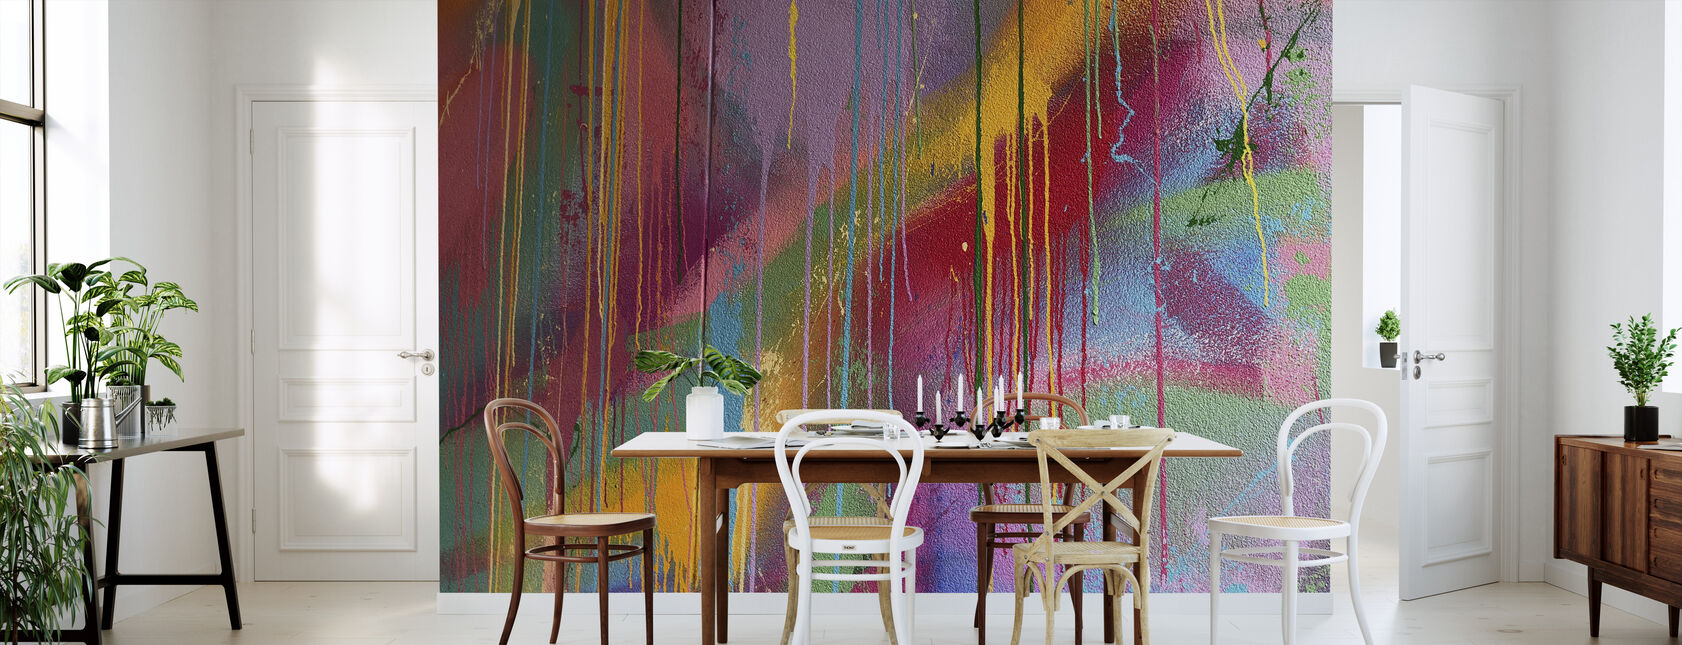 Colorful Wall Graffiti - Wallpaper - Kitchen